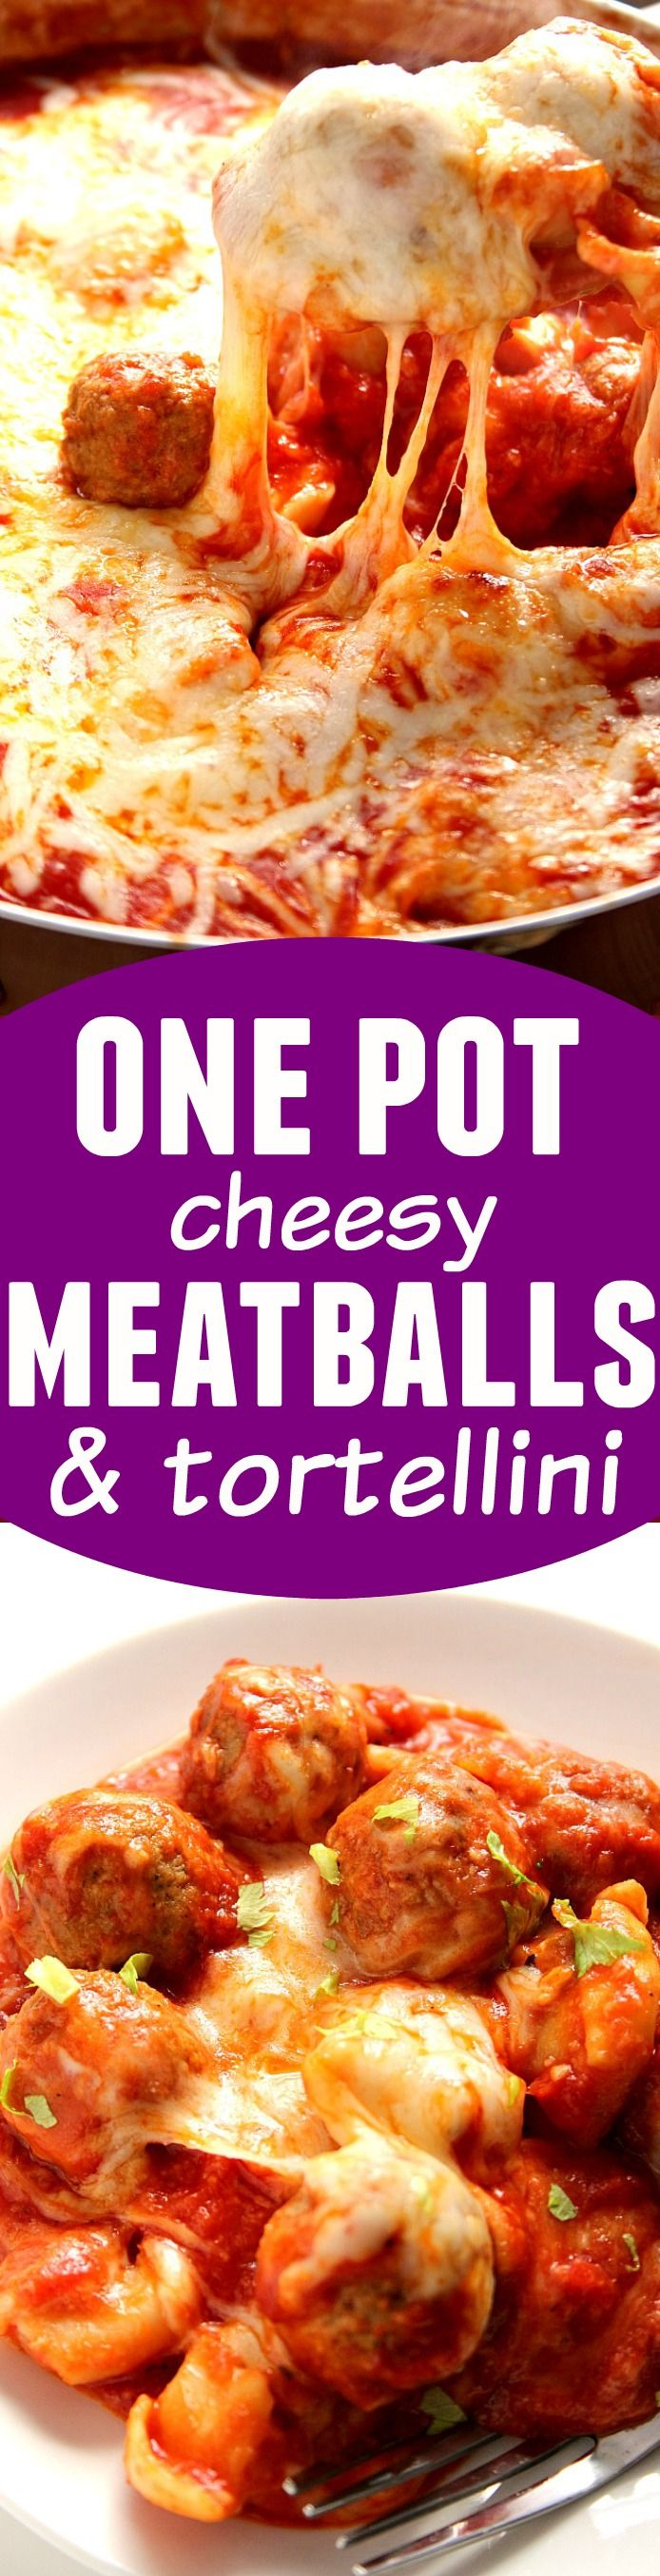 One Pot Cheesy Tortellini and Meatballs Recipe – easy weeknight meal that your family will love! Cheesy, saucy and made with just a few ingredients!